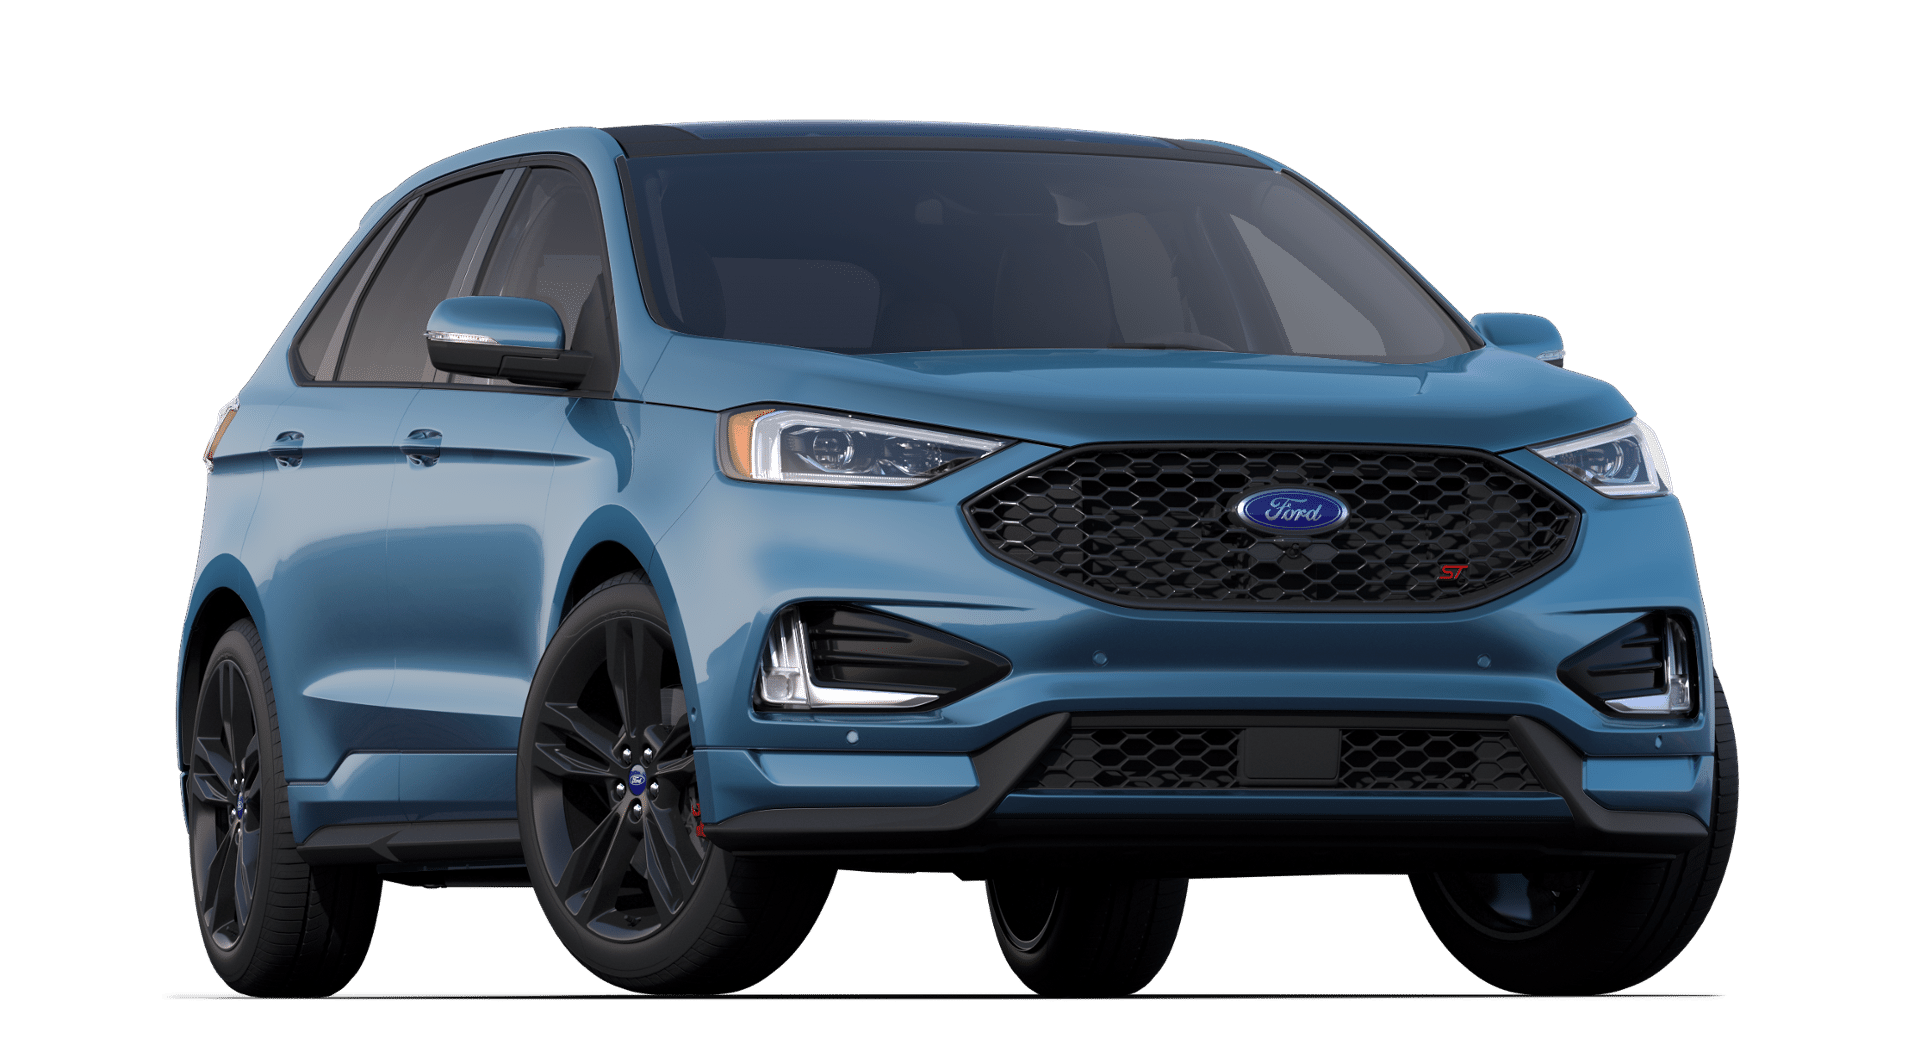 2019 Ford Edge ST Price Starts At $43,450 And Tops Out